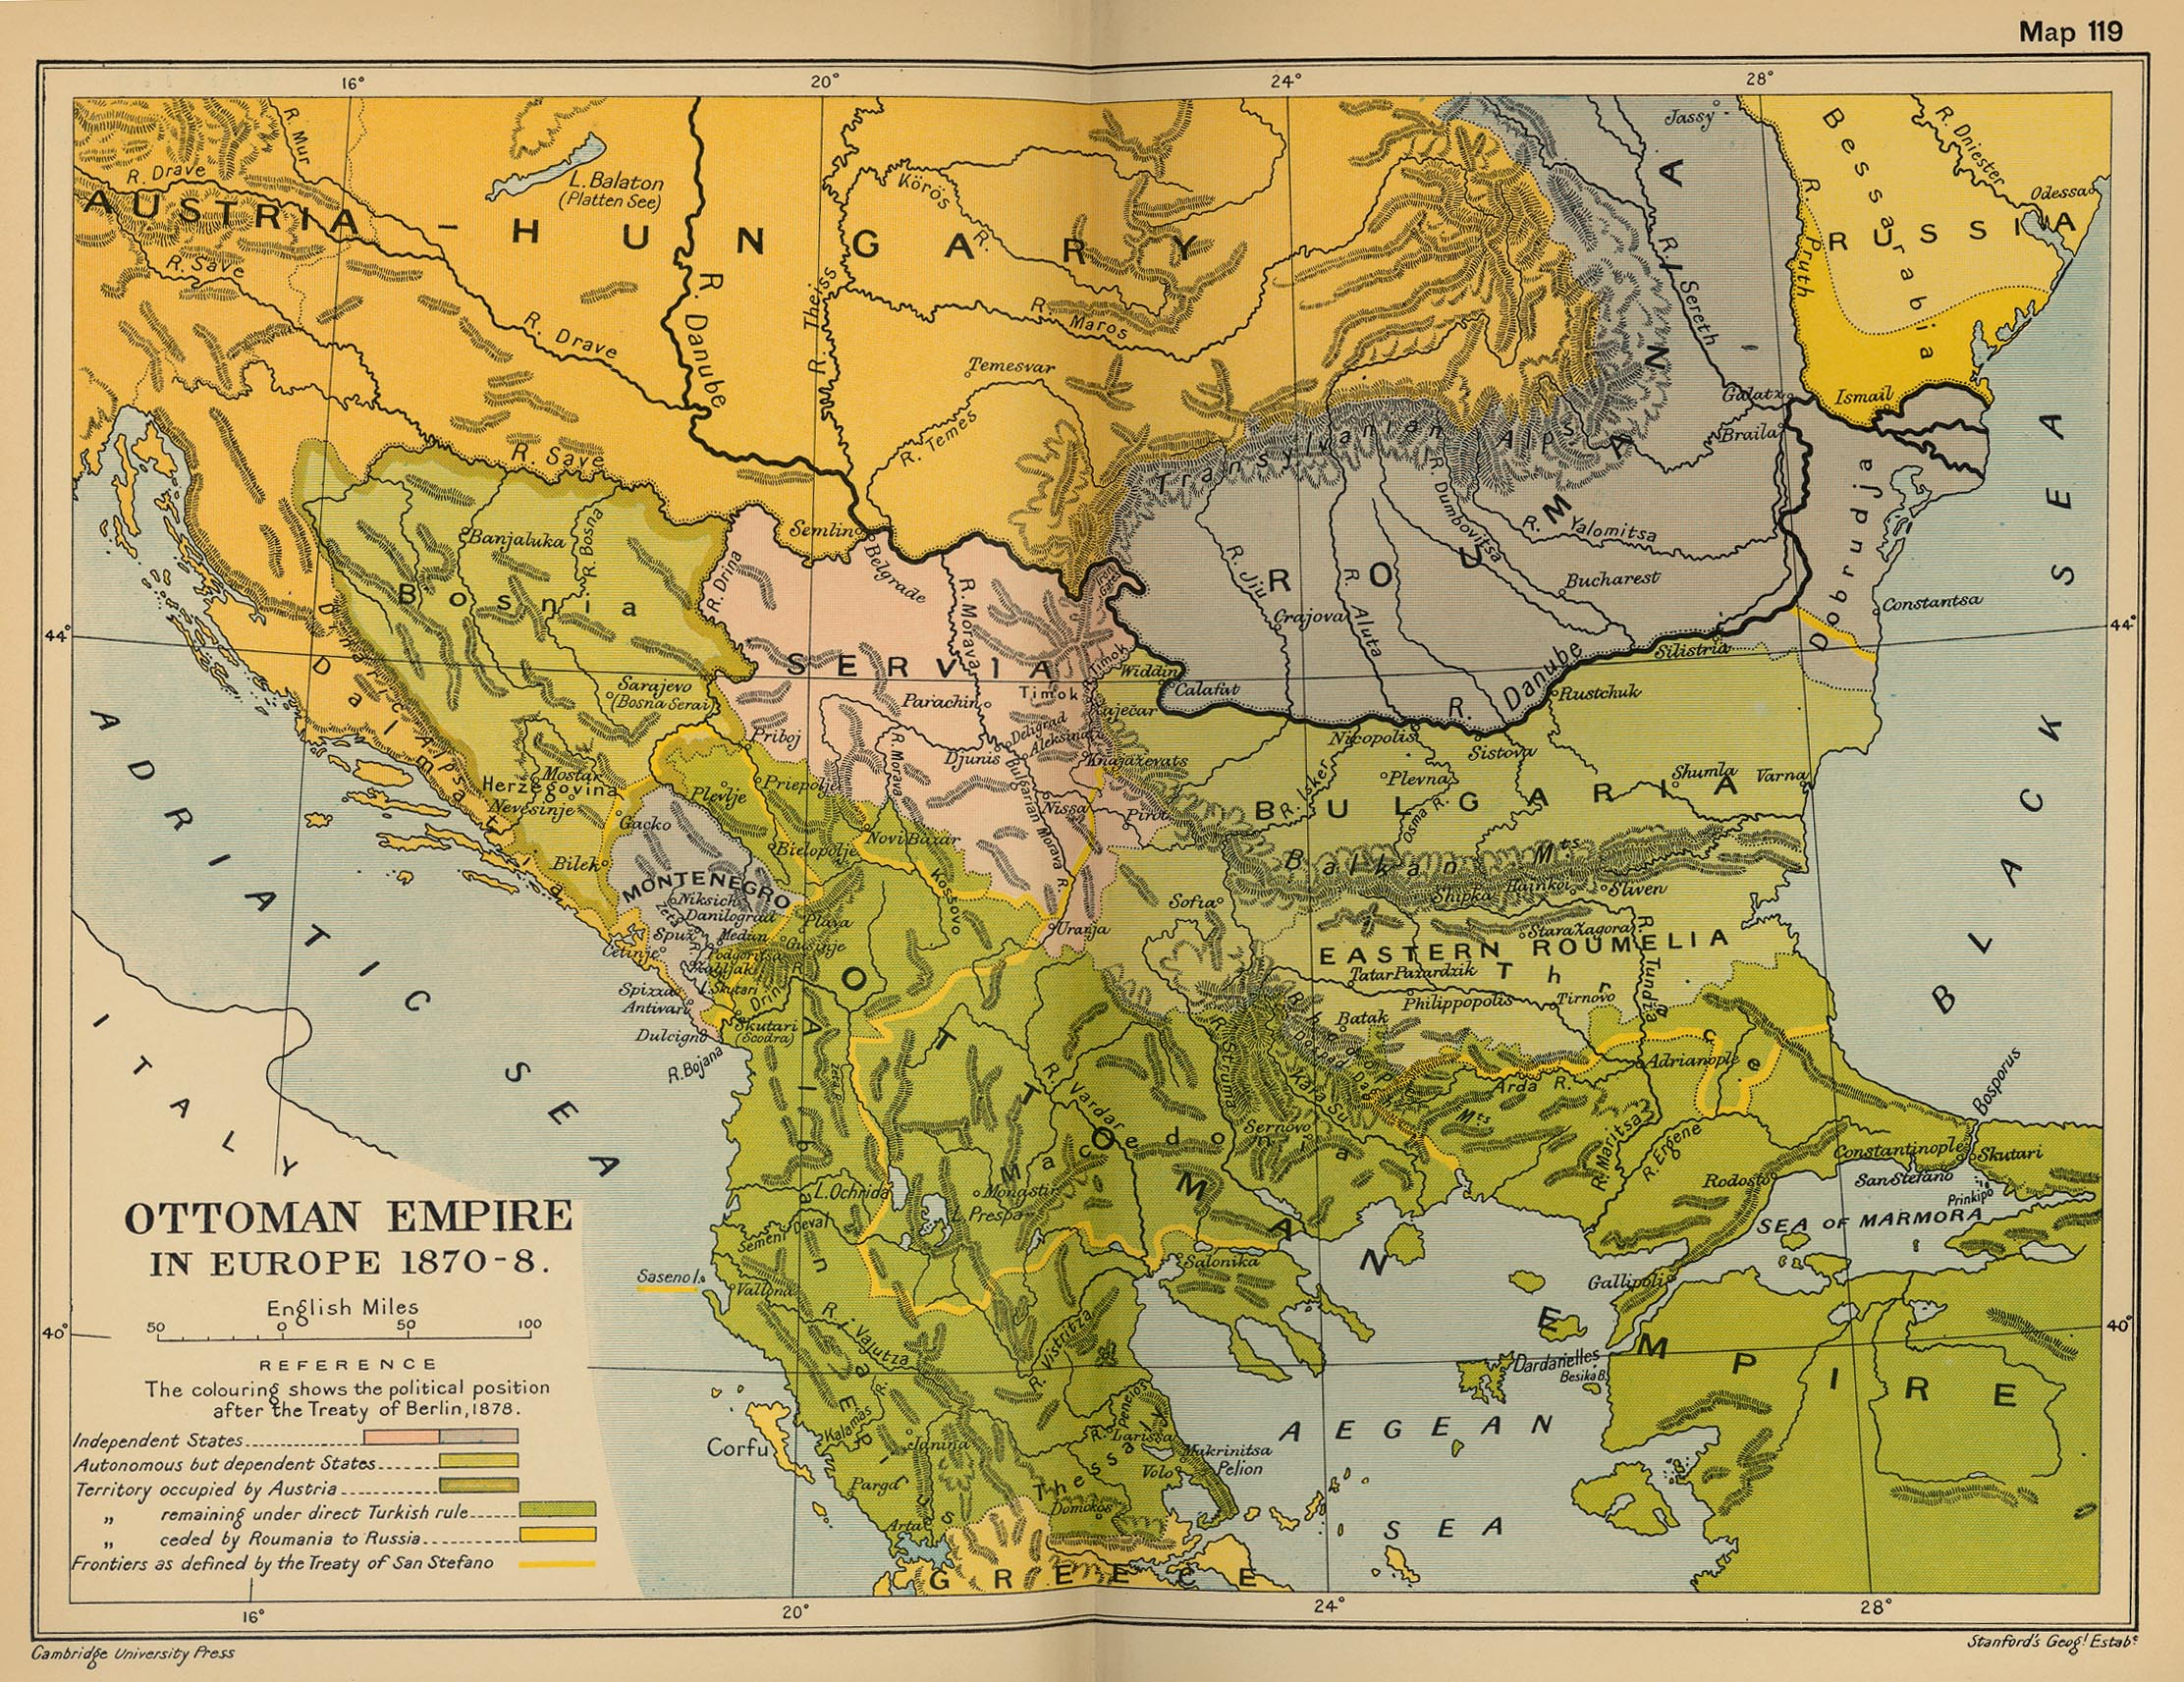 Map of the Ottoman Empire in Europe 1870-1878